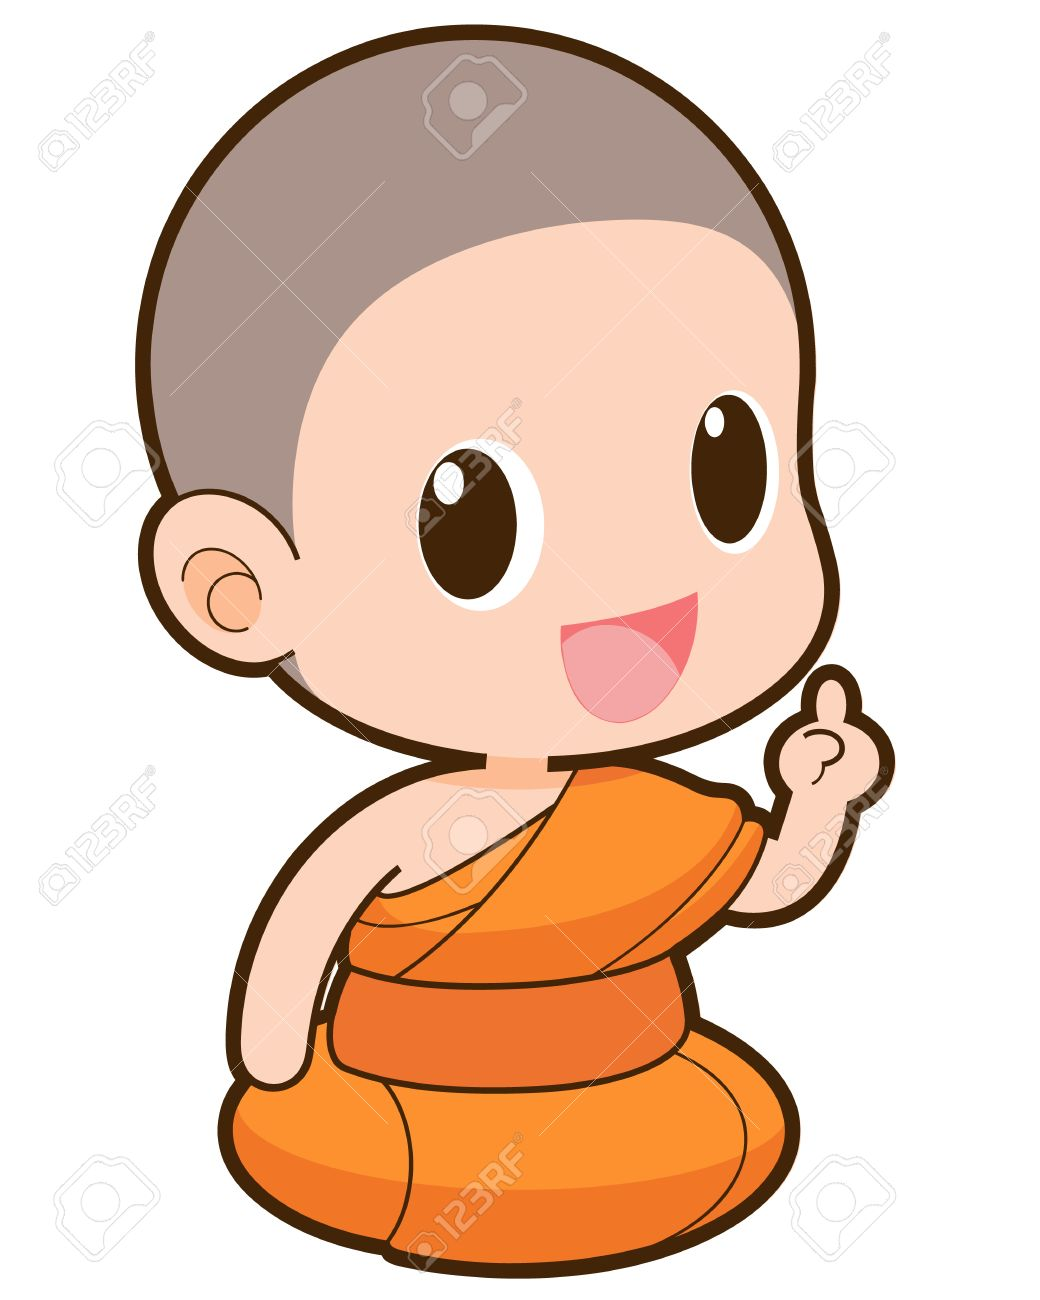 Buddhist Monk Cartoon Illustration Royalty Free Cliparts Vectors